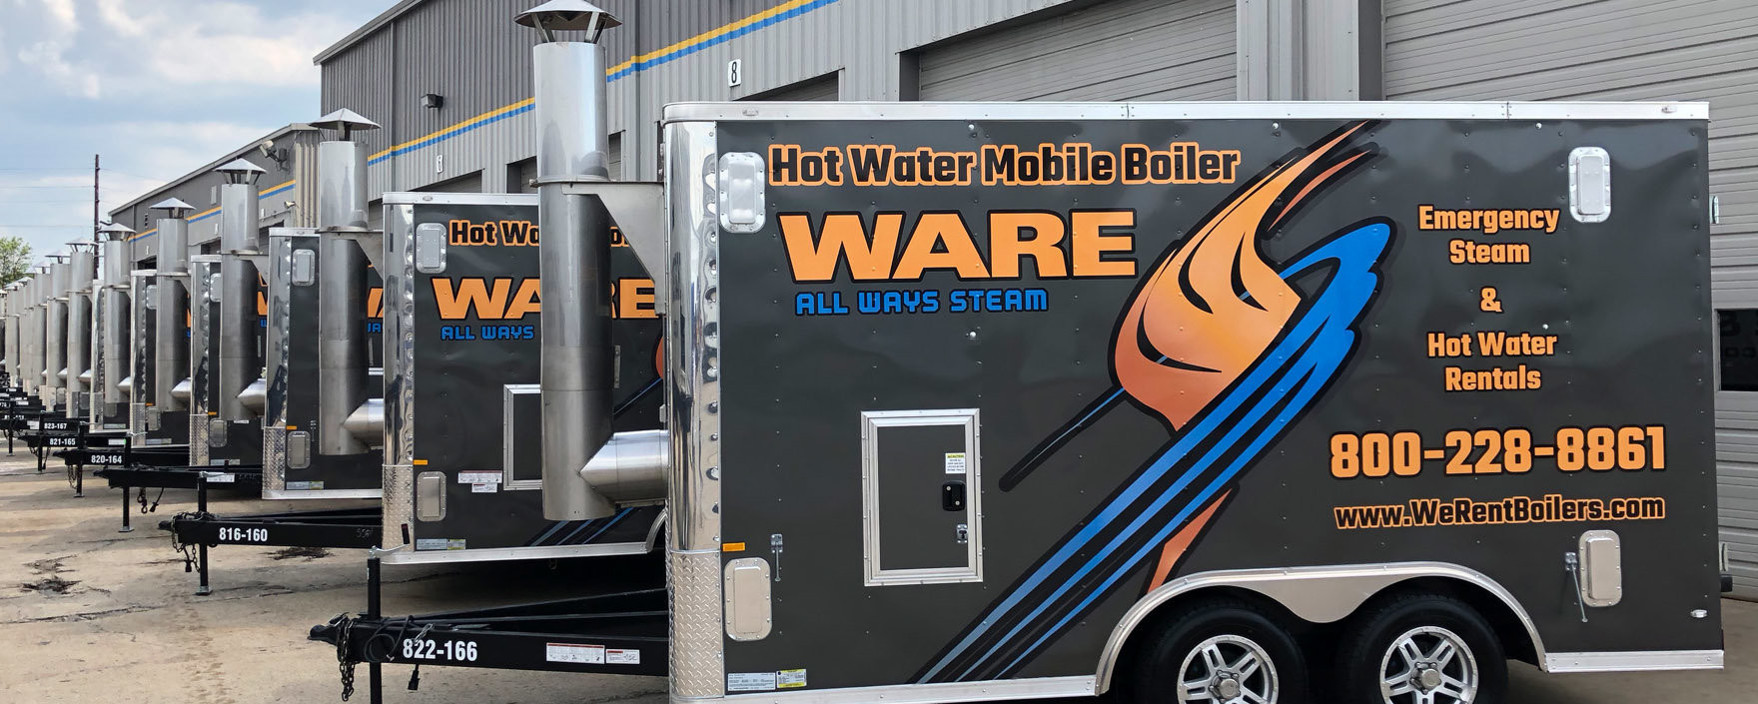 Mobile Hot Water Boiler Rentals